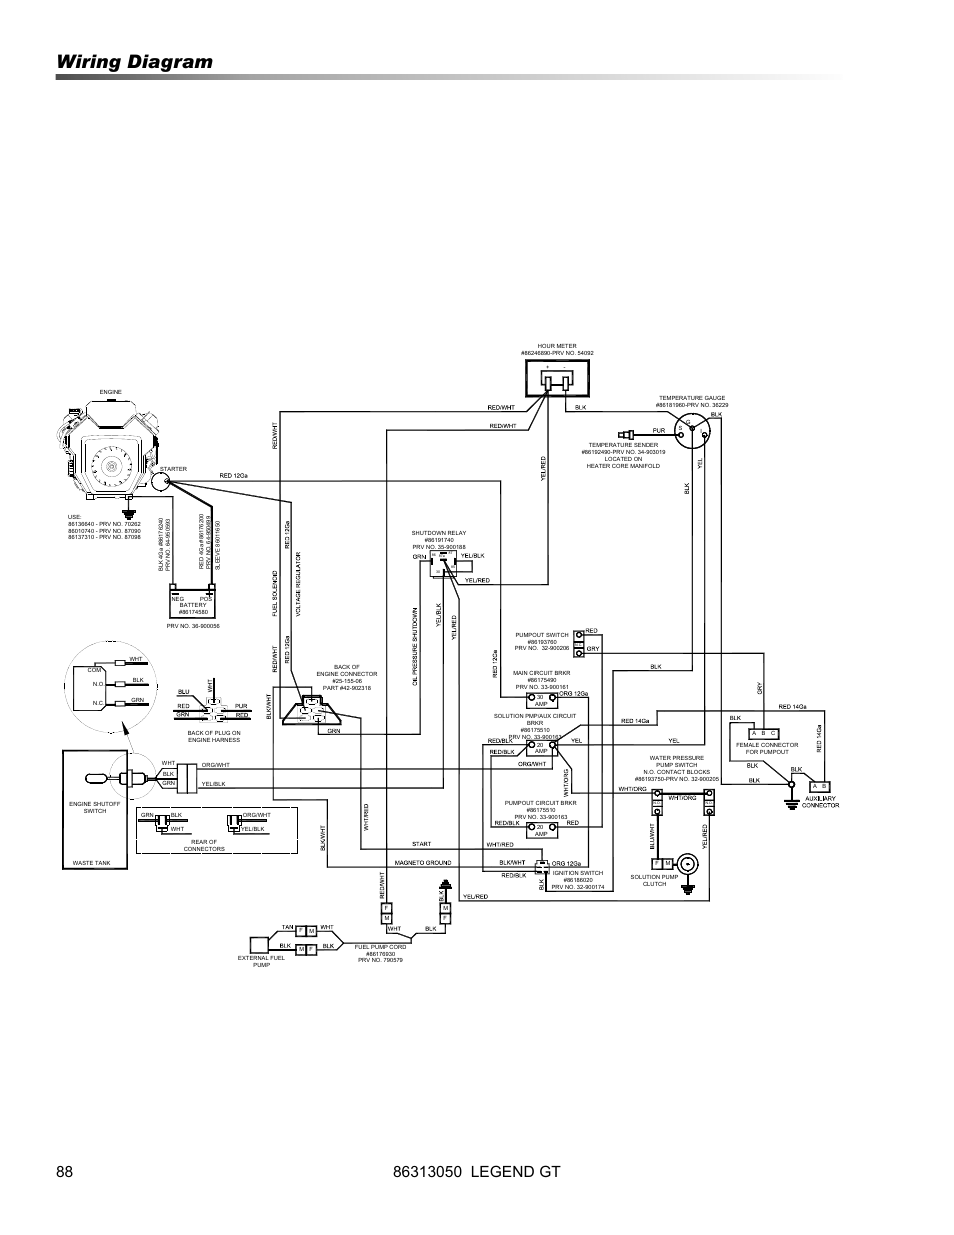 Wiring diagram prochem legend gt user manual page